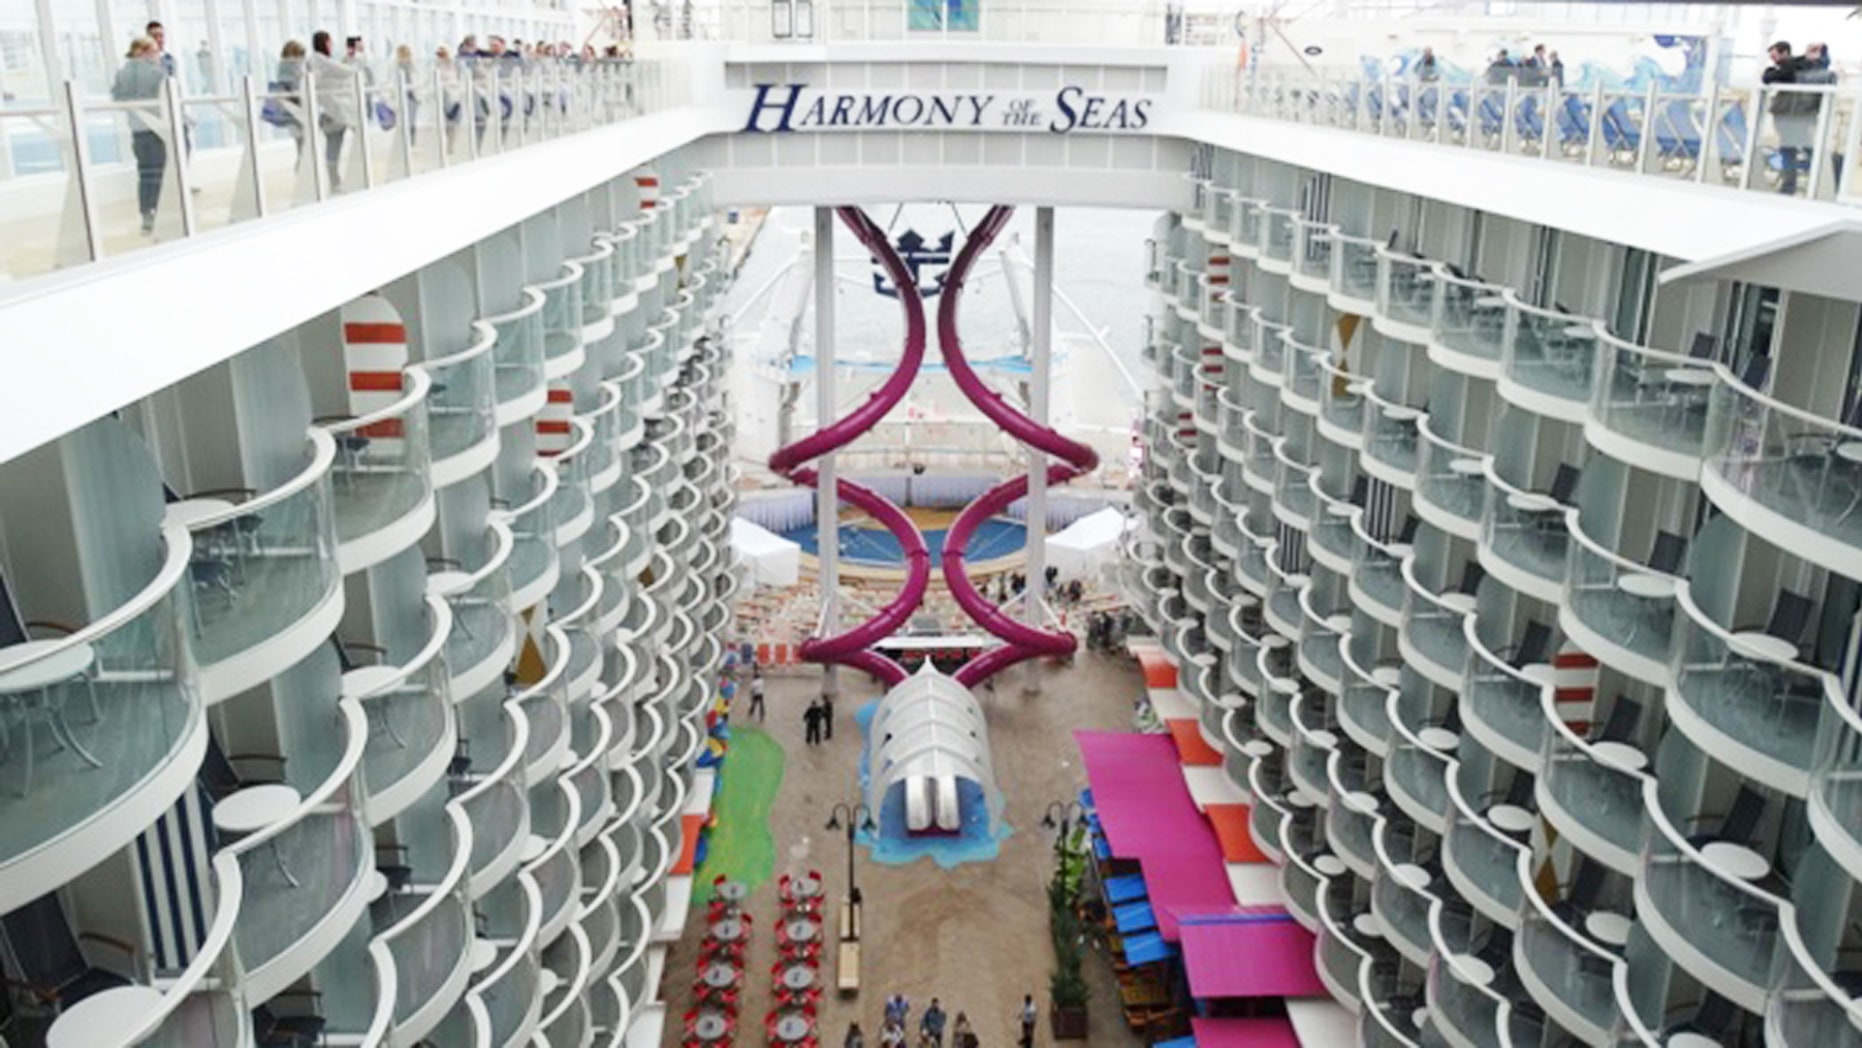 Harmony of the Seas is the world's largest cruise ship and offers many at-seas firsts for cruisers.